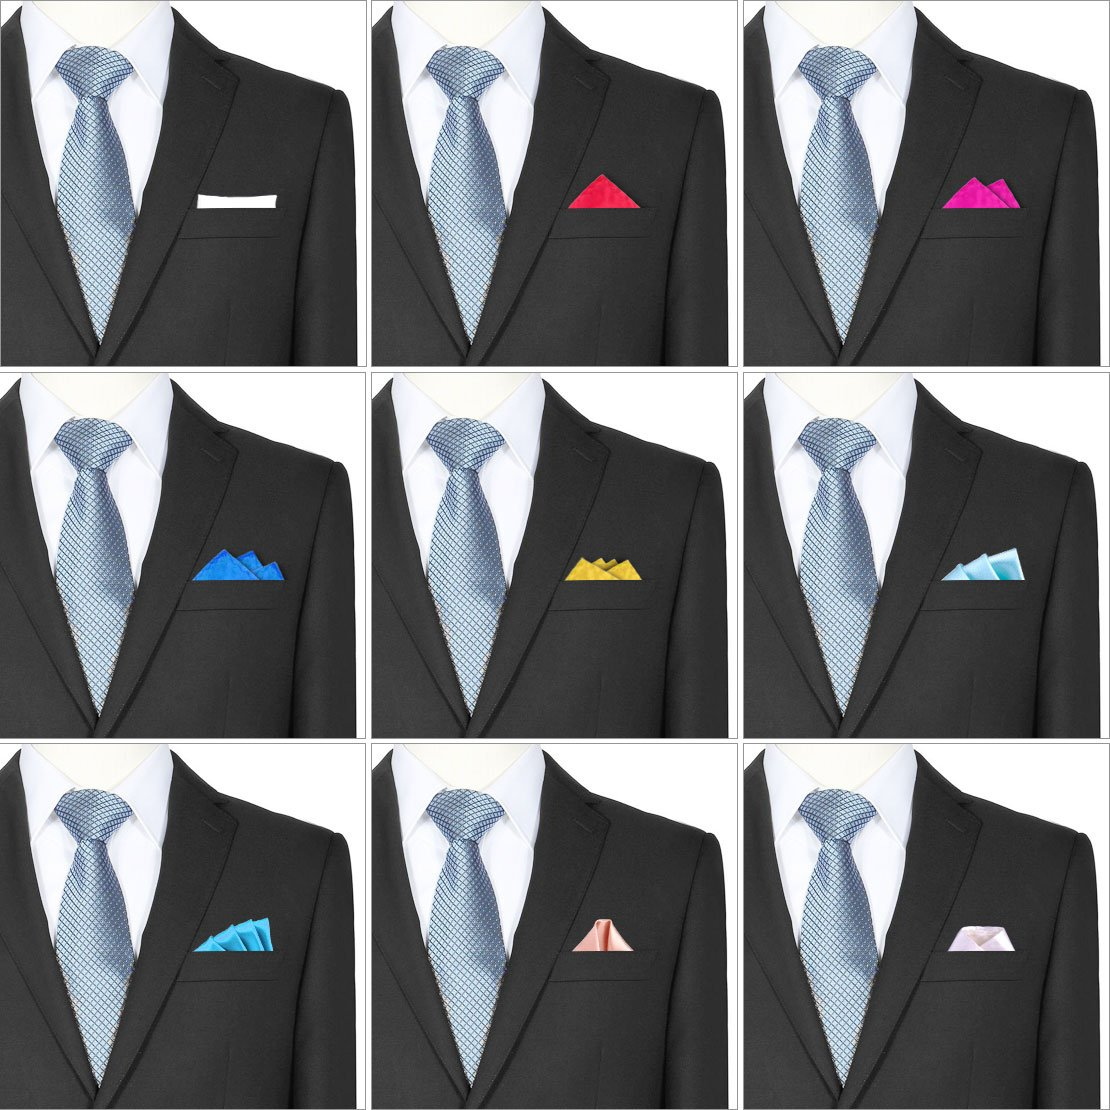 26 Pack Men's Silk Pocket Square Handkerchief Hanky Wedding Party Gift ciciTree by ciciTree (Image #7)